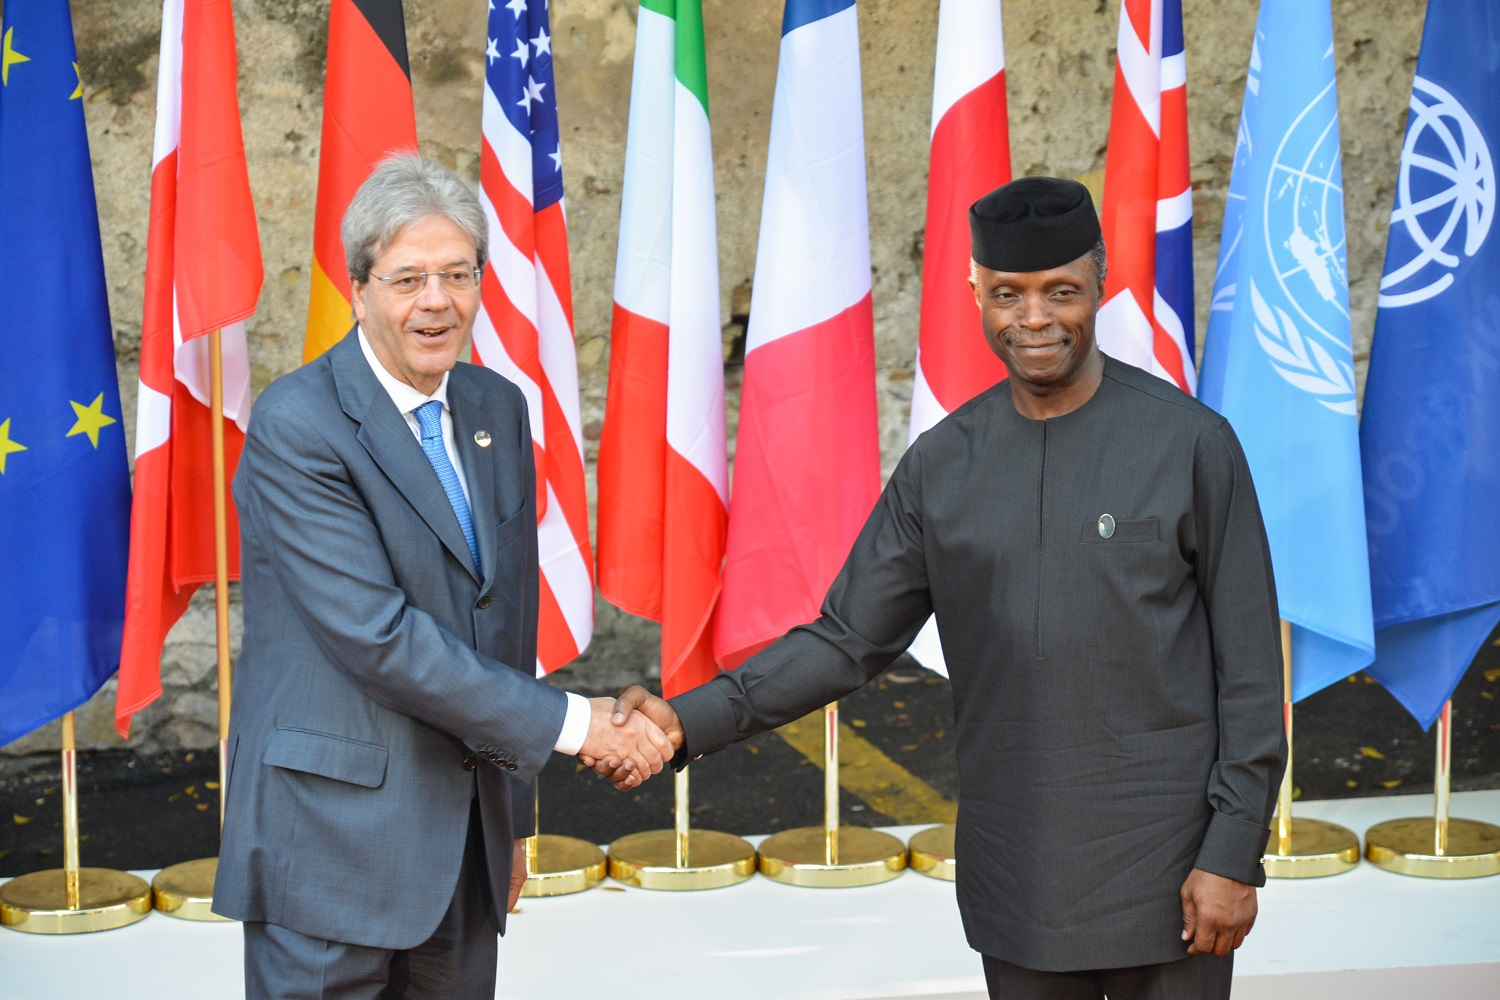 """We Must Love our Enemies, Build Bridges Between Faith and Ethnicity"" – Vice President Yemi Osinbajo"